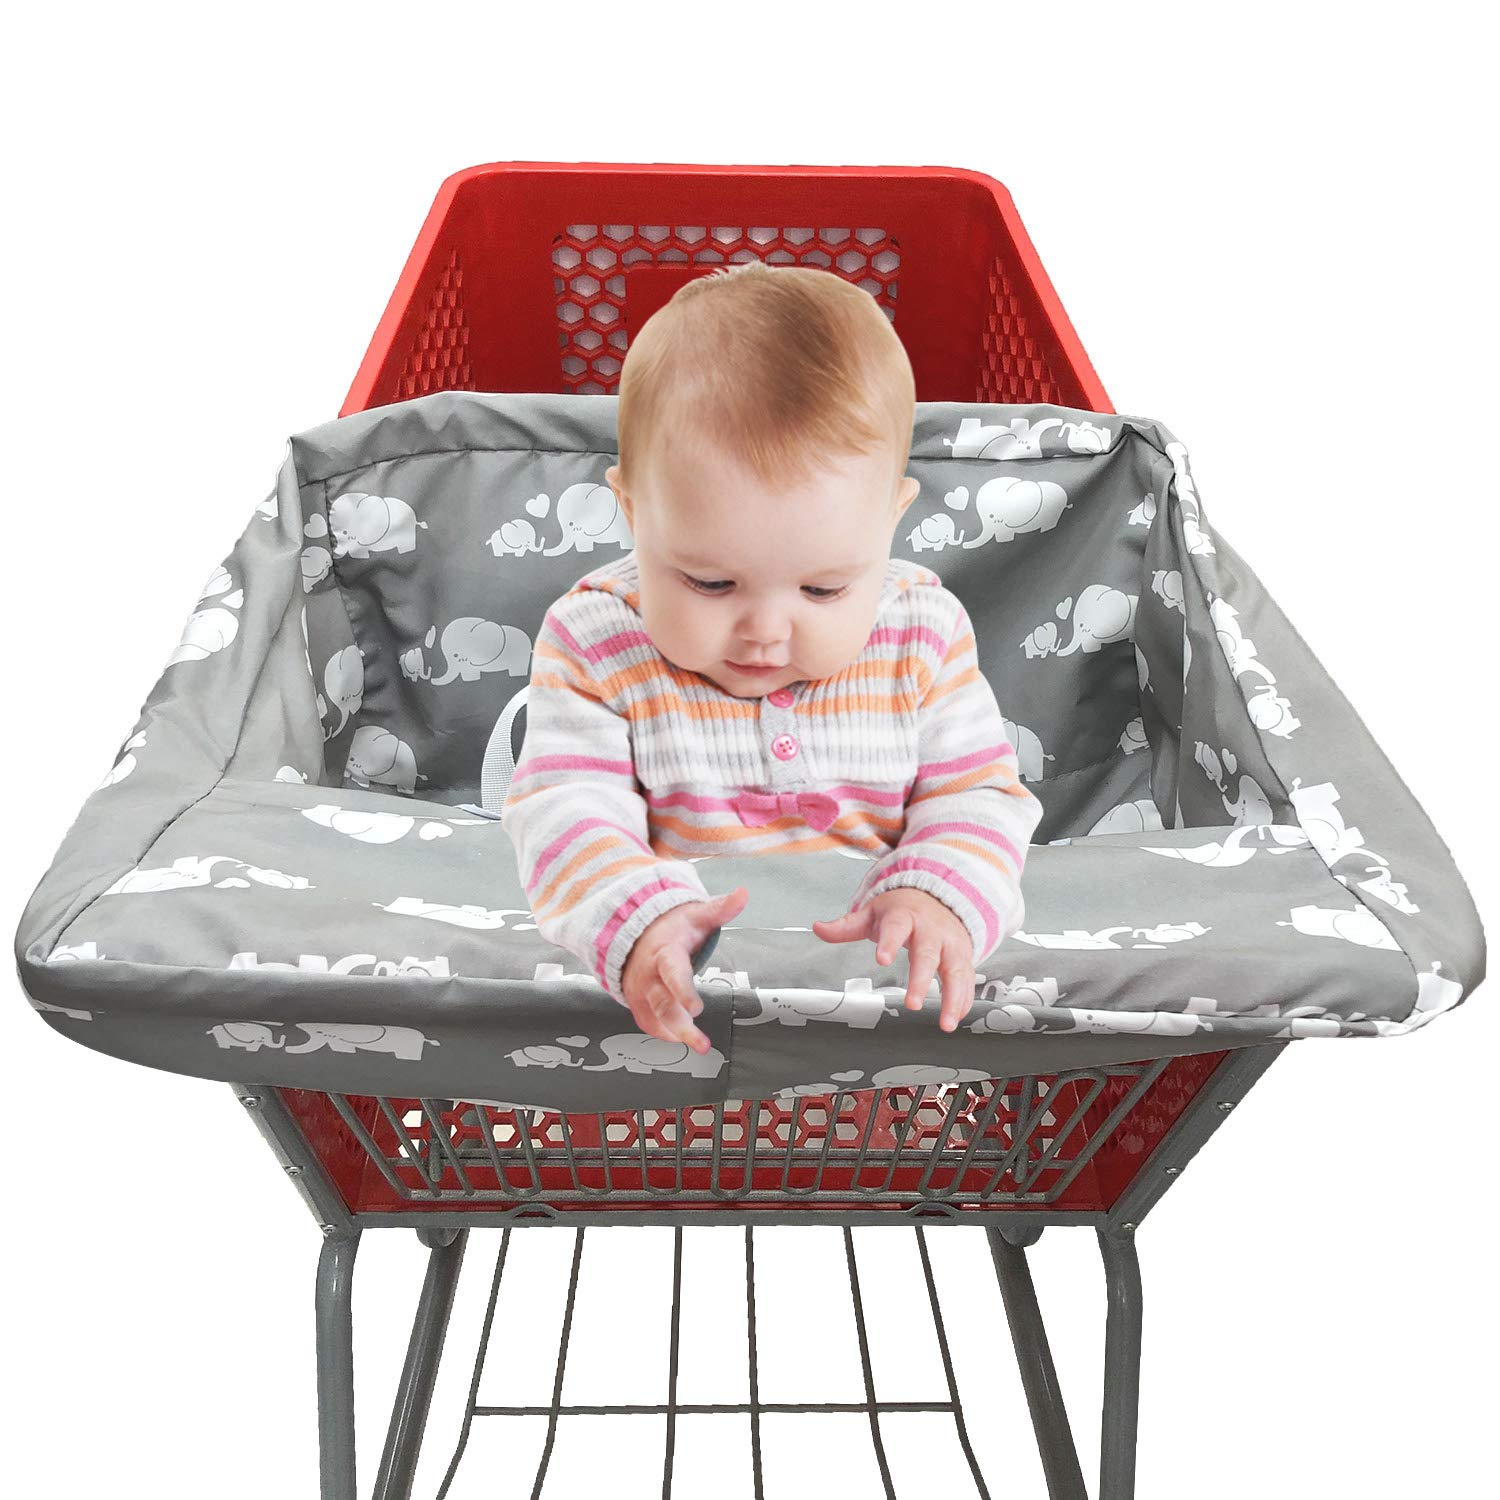 Portable Shopping Cart Seat Cover | High Chair and Grocery Cart Covers for Babies, Kids, Infants & Toddlers ✮ 2-in-1 Design ✮ Includes Free Carry Bag ✮ (Simple White Elephant)